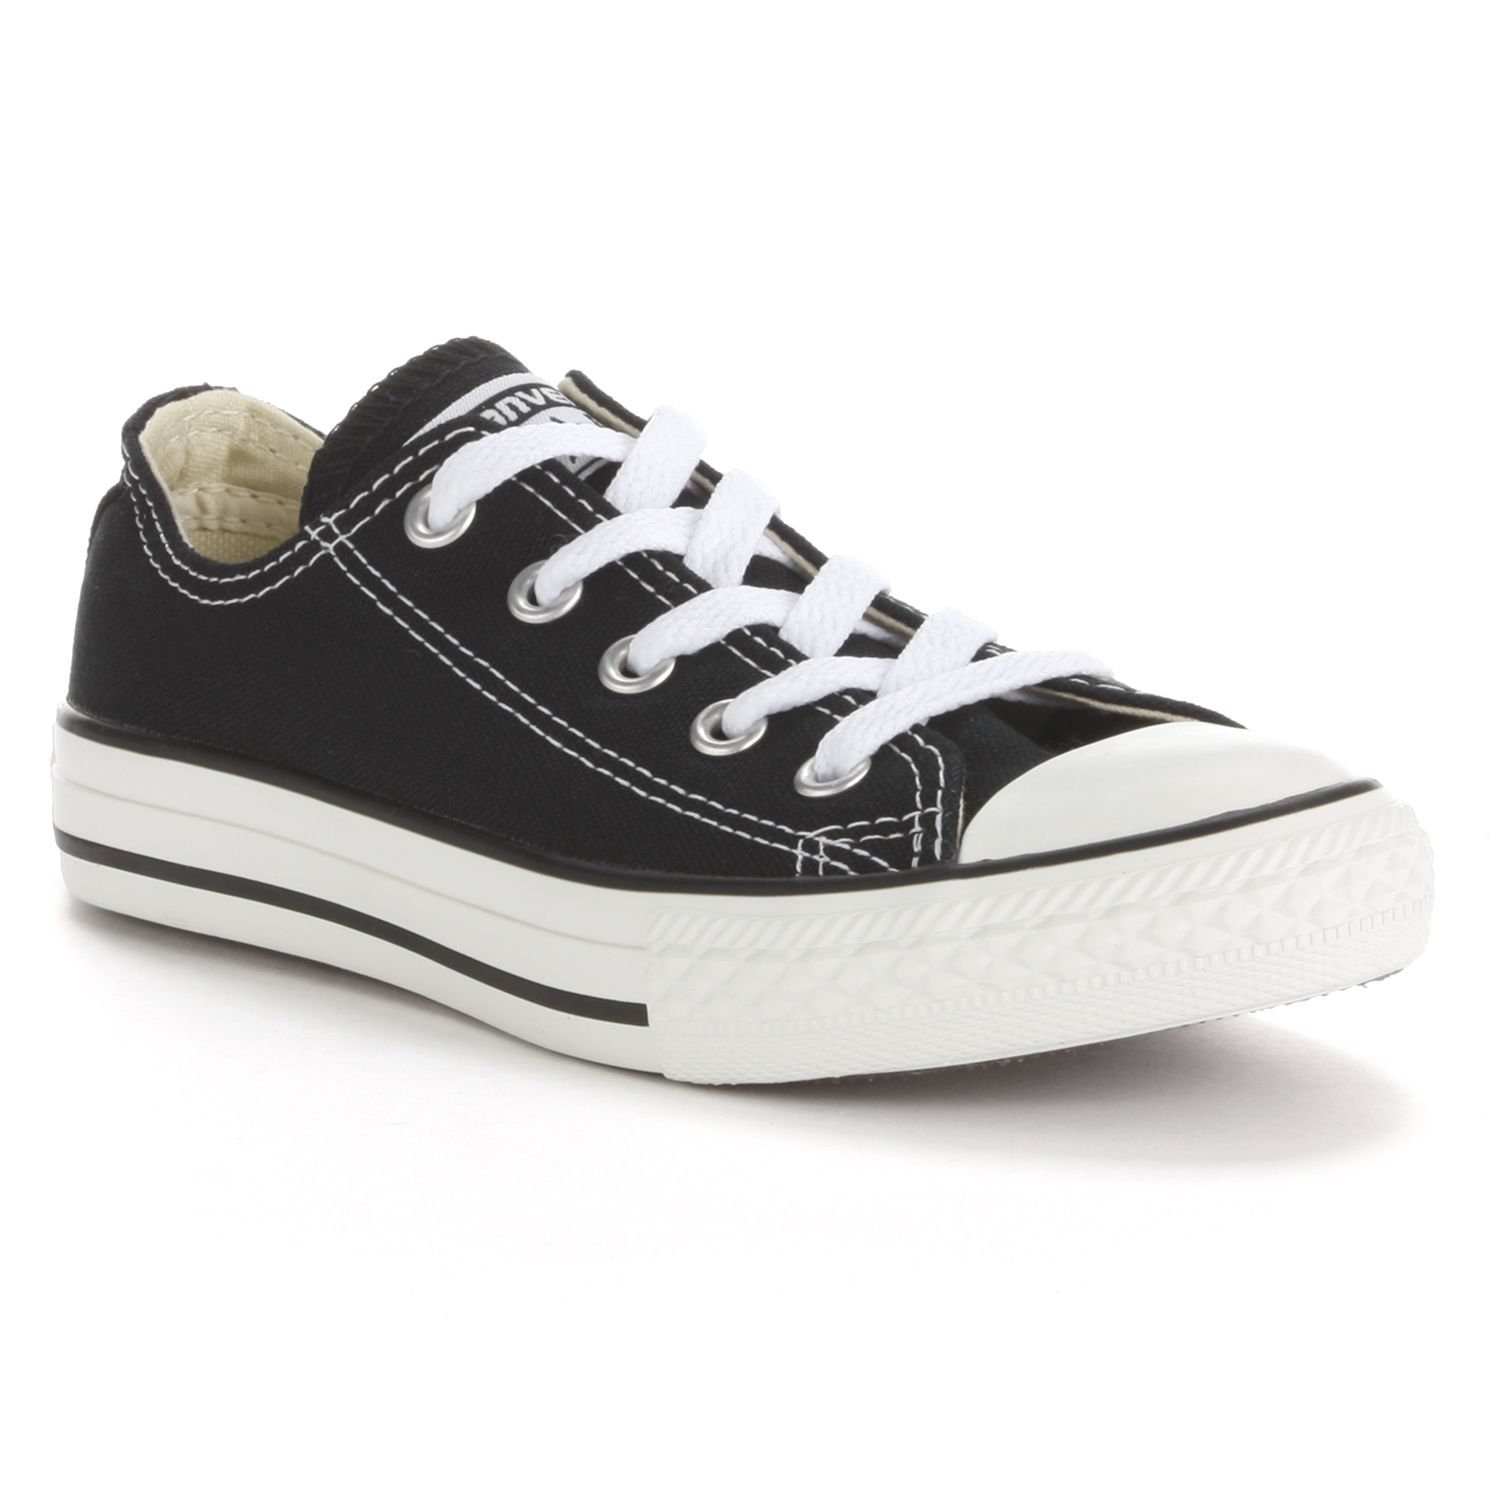 converse shoes youth size 7